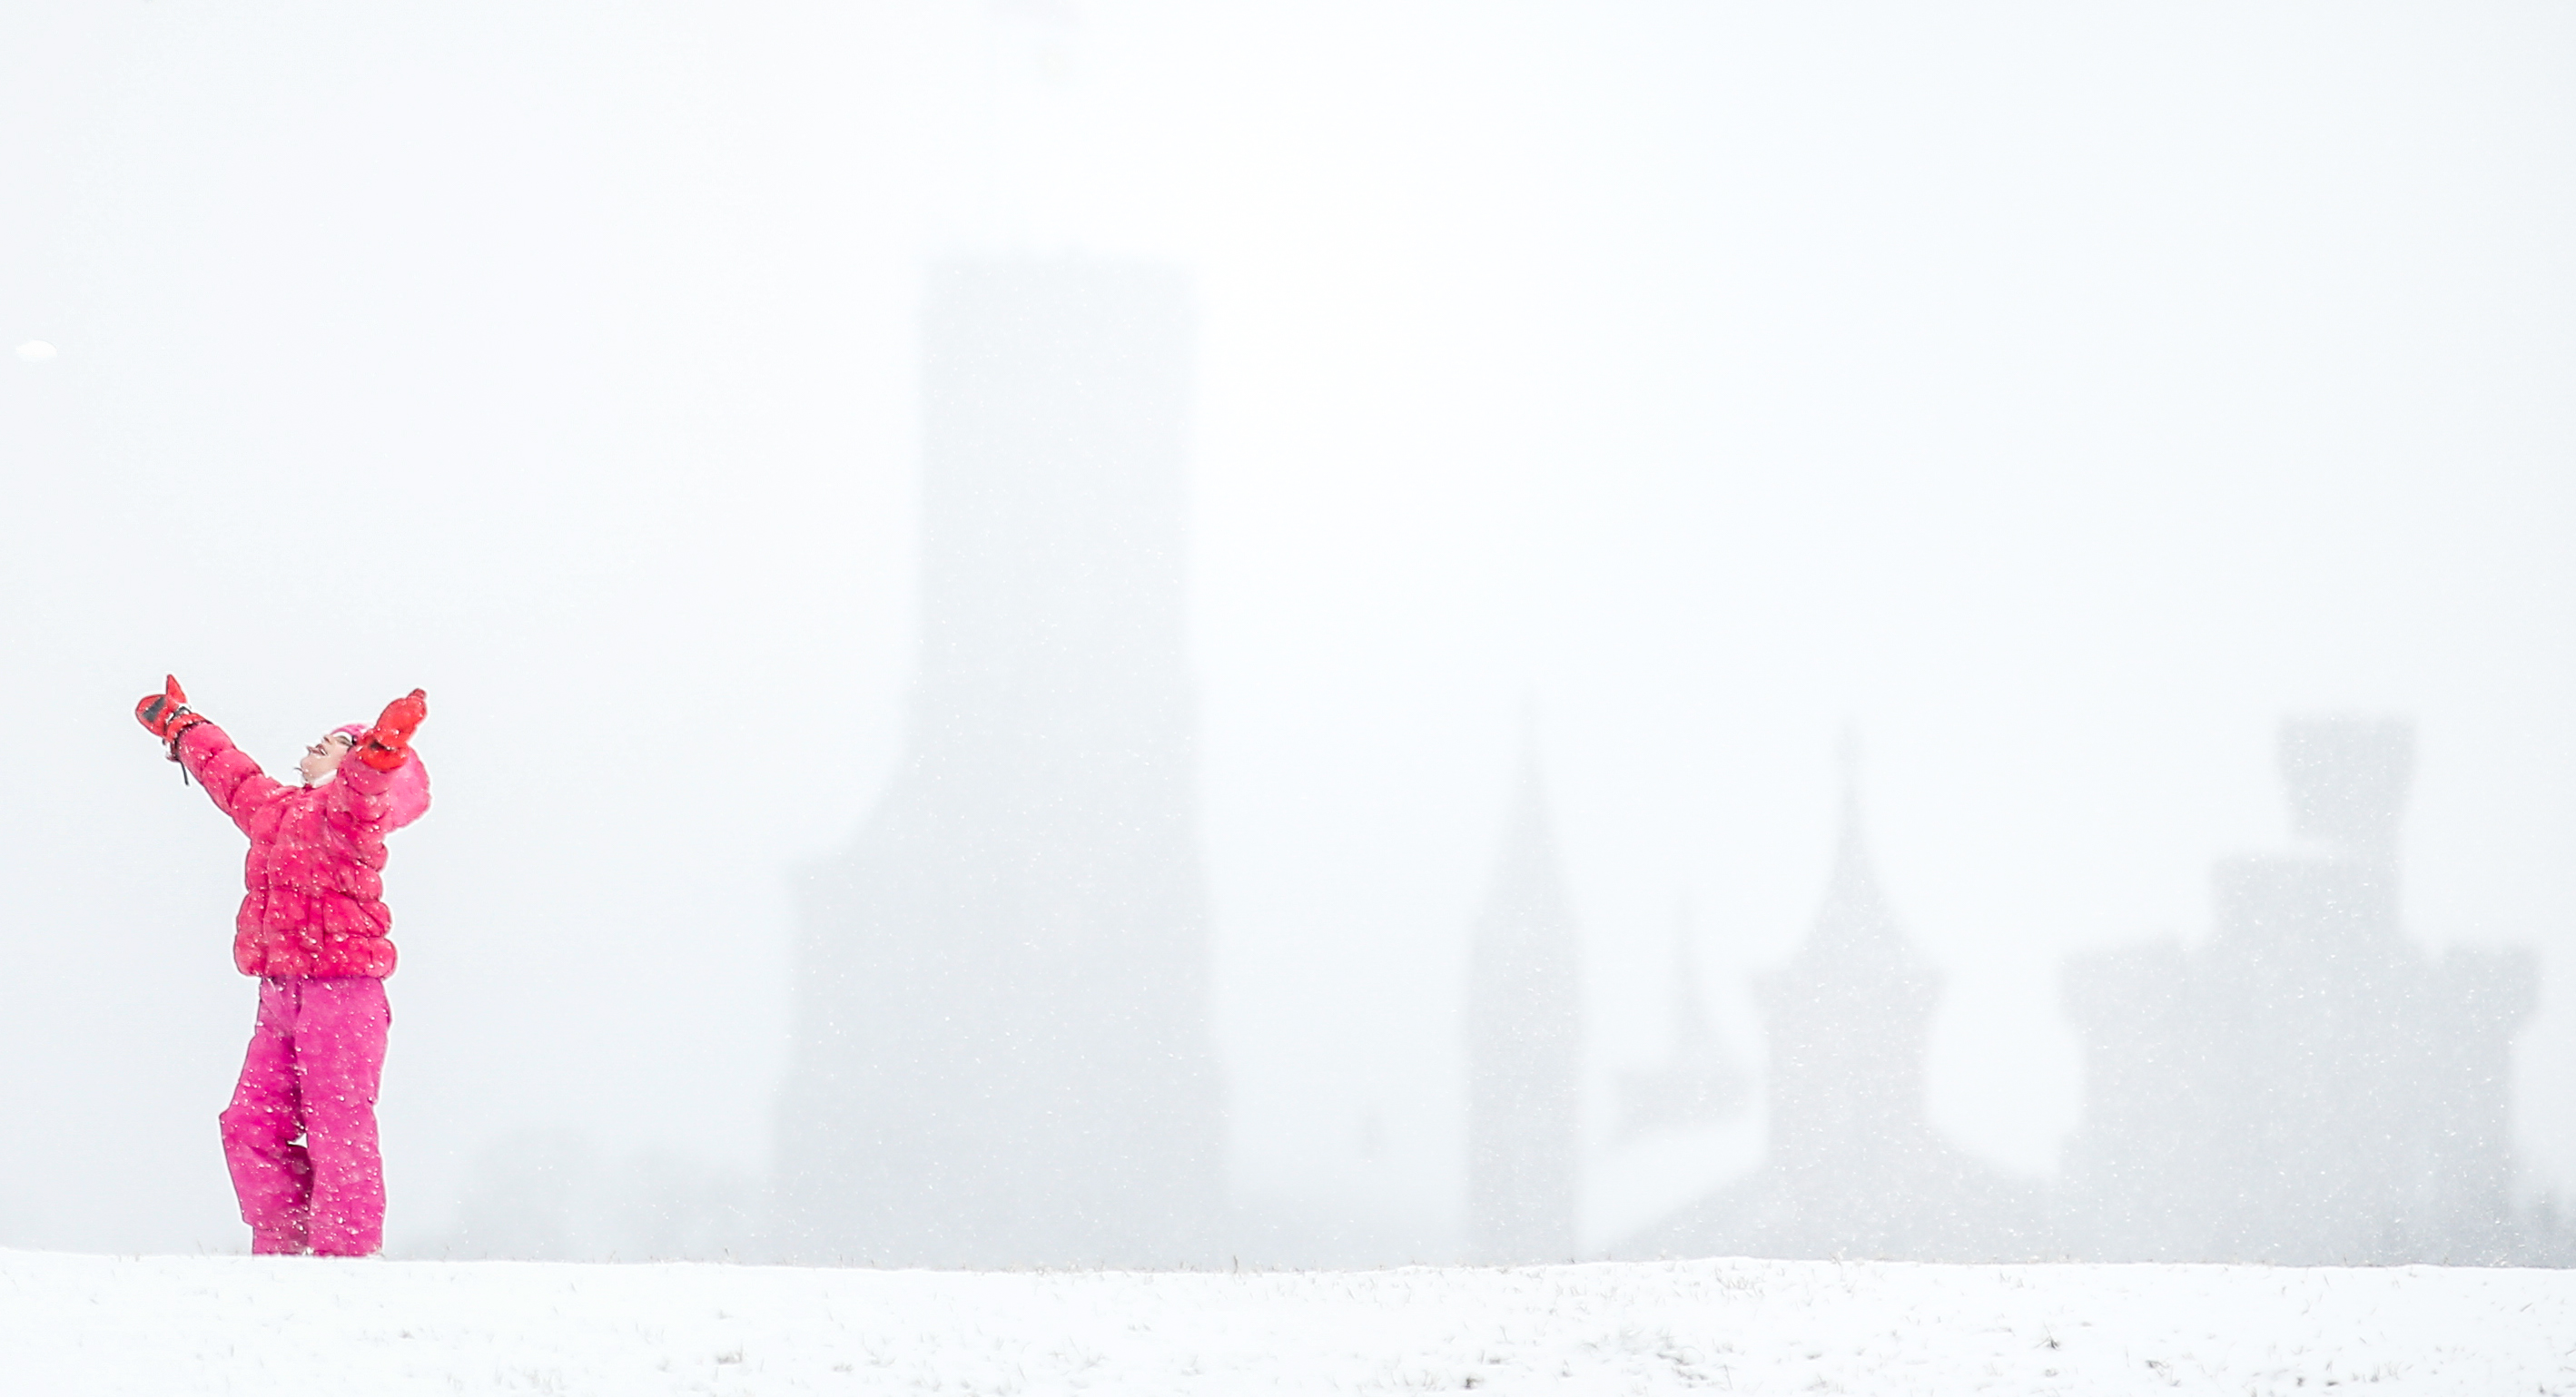 The Smithsonian Institution Building, known as The Castle, is visible behind Mia Molnar, 6, of Tampa, Fla., who plays in the snow on the National Mall in Washington, Thursday, March 5, 2015. The U.S. federal government said its offices in the Washington area will be closed Thursday because of a new round of winter weather expected in the region. The Office of Personnel Management said non-emergency personnel in and around Washington were granted excused absences for the day. Emergency employees and telework-ready employees were expected to work. (AP Photo/Andrew Harnik)